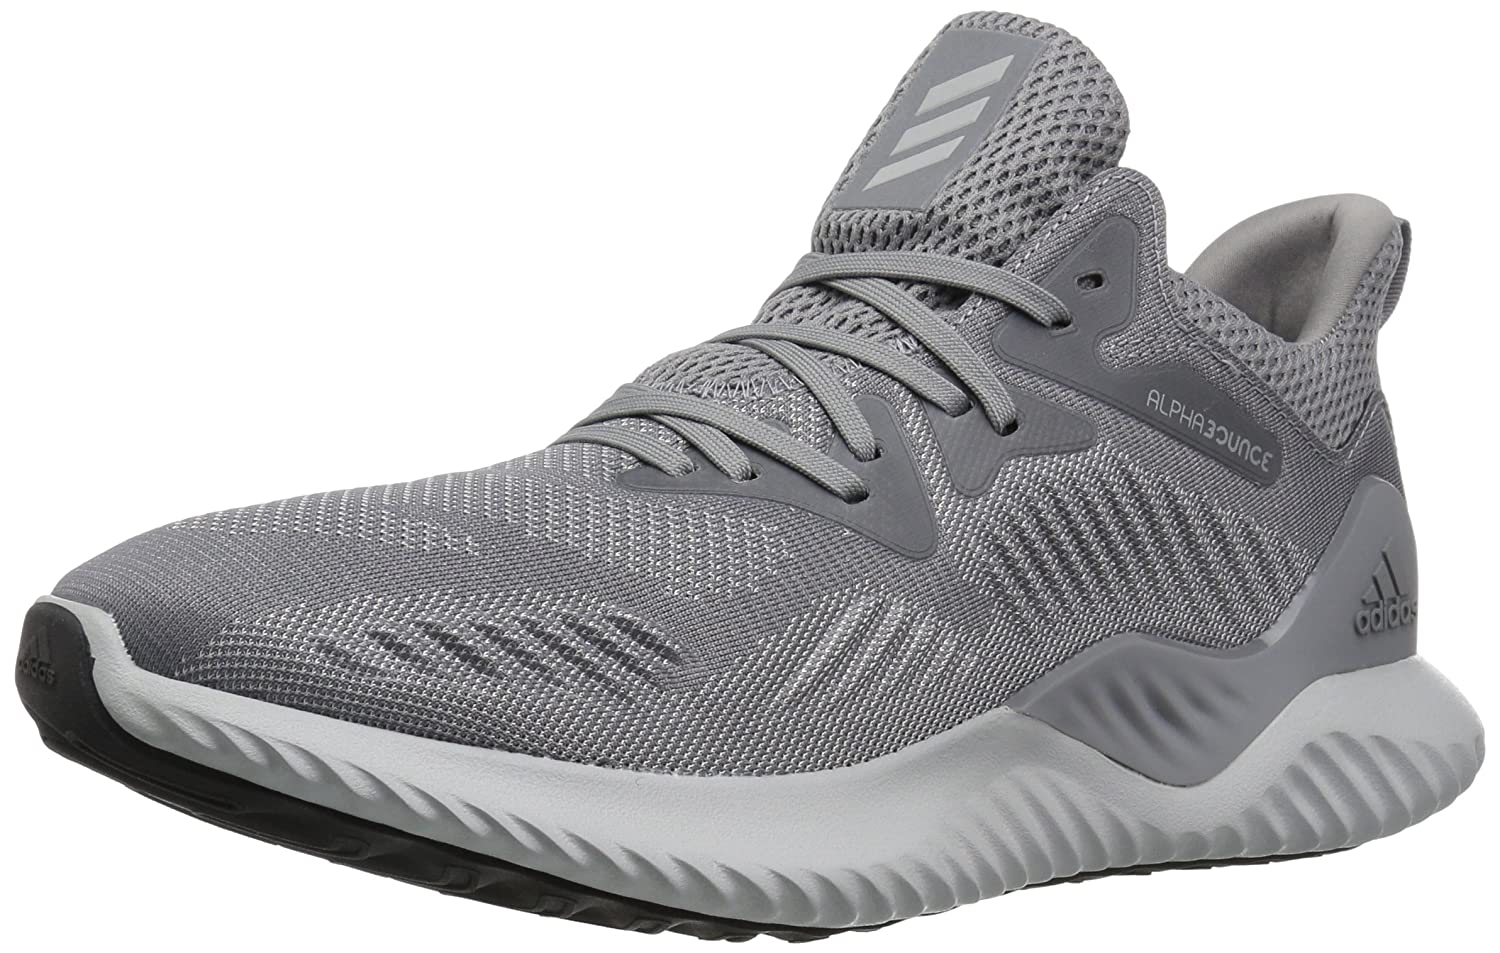 buy popular 08faf 621a1 adidas Men's Alphabounce Beyond Running Shoe, Grey, 10 M US